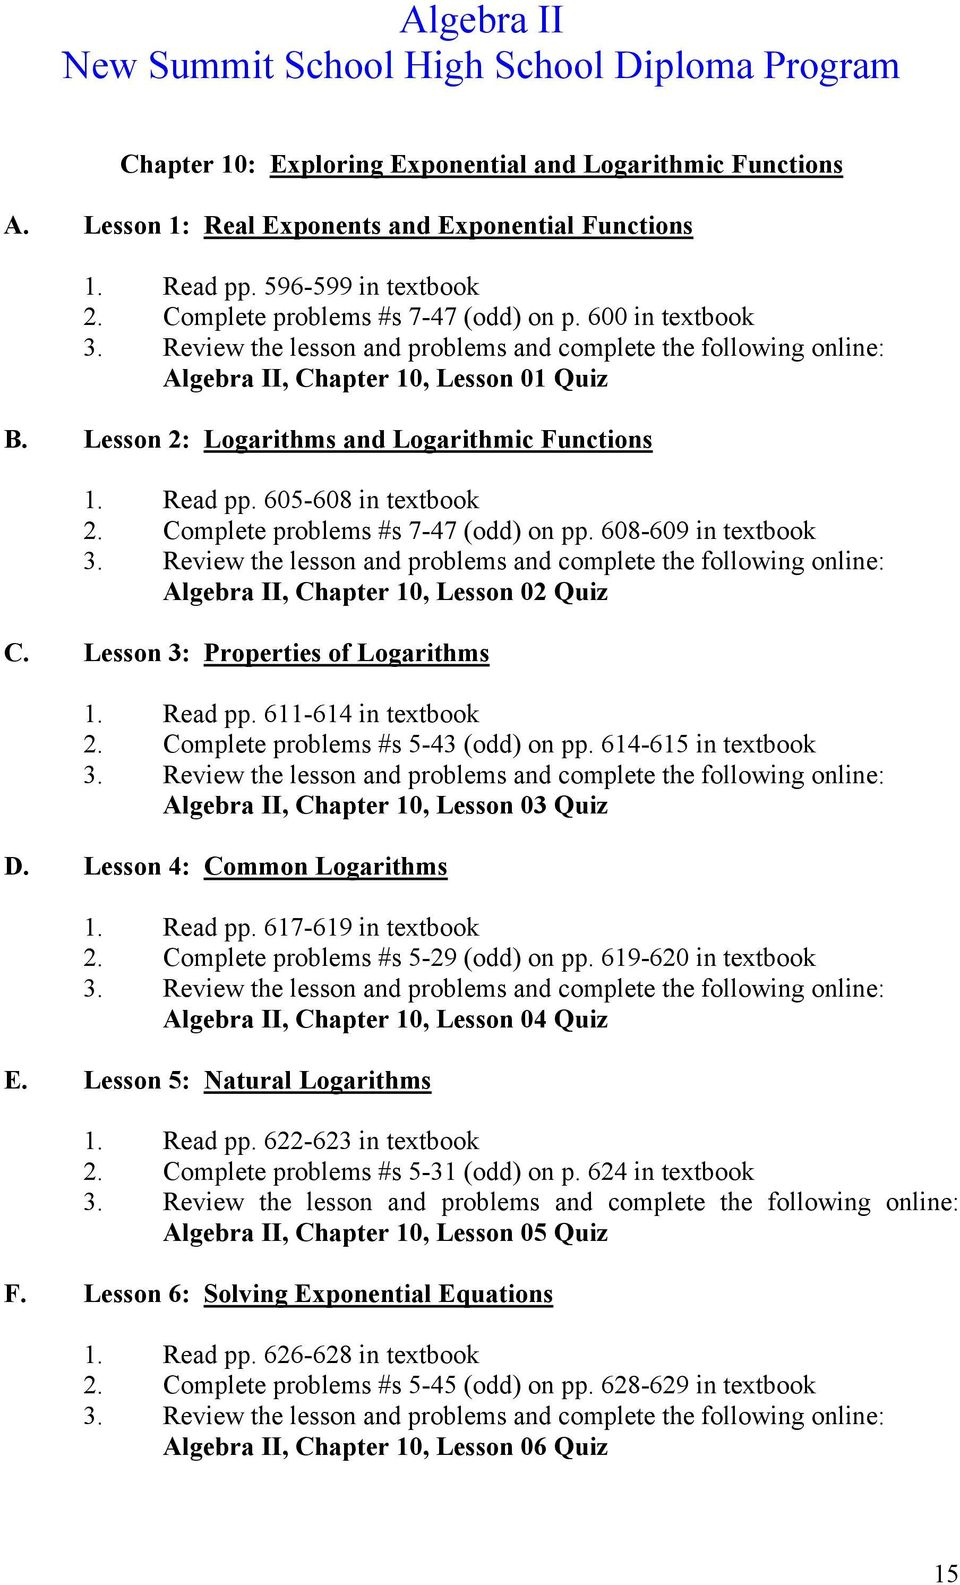 608-609 in textbook Algebra II, Chapter 10, Lesson 02 Quiz C. Lesson 3: Properties of Logarithms 1. Read pp. 611-614 in textbook 2. Complete problems #s 5-43 (odd) on pp.